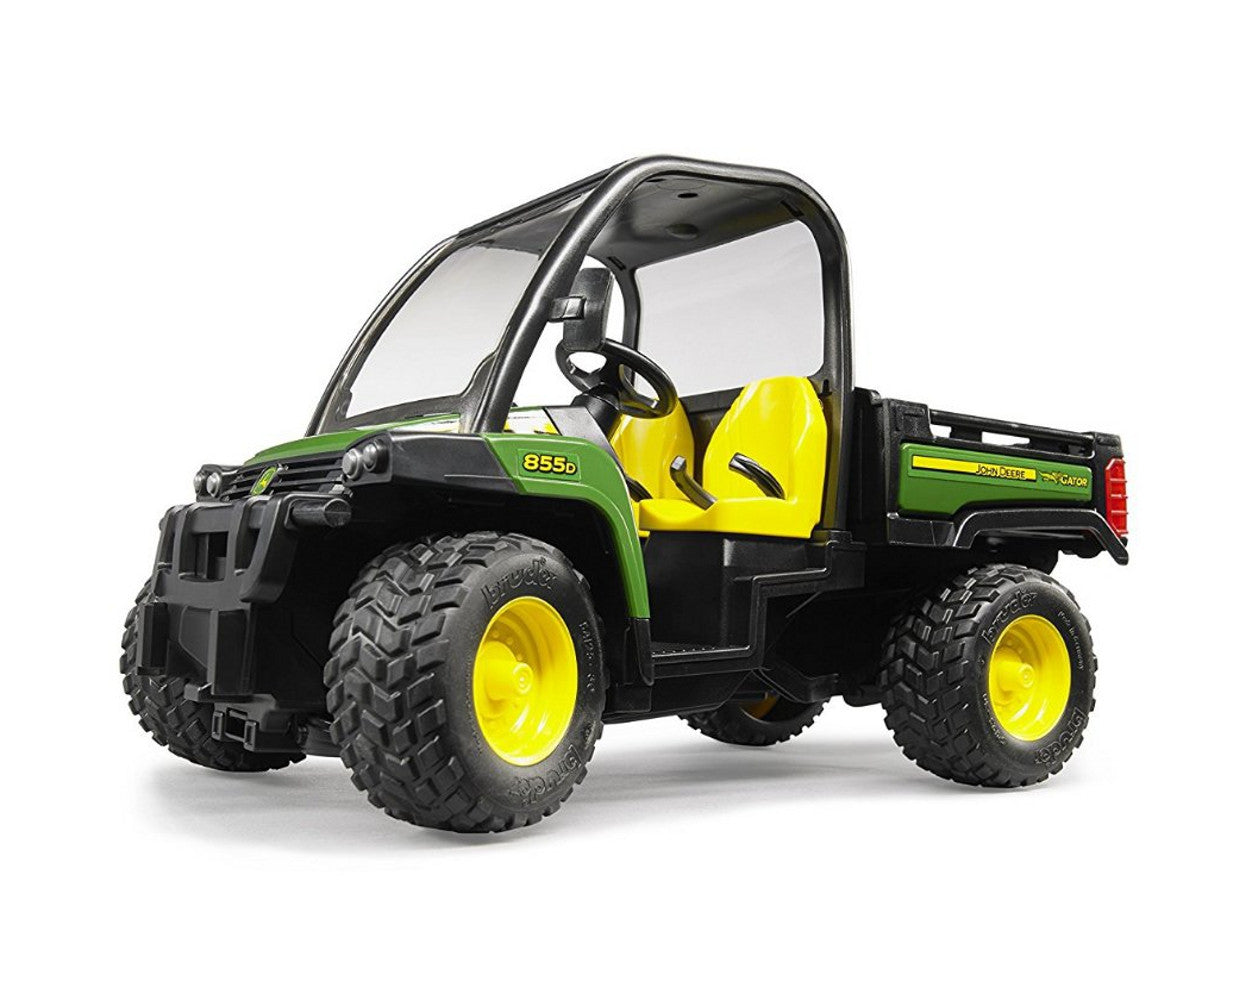 1/16 Scale John Deere Gator 855D Toy by Bruder - LP53292